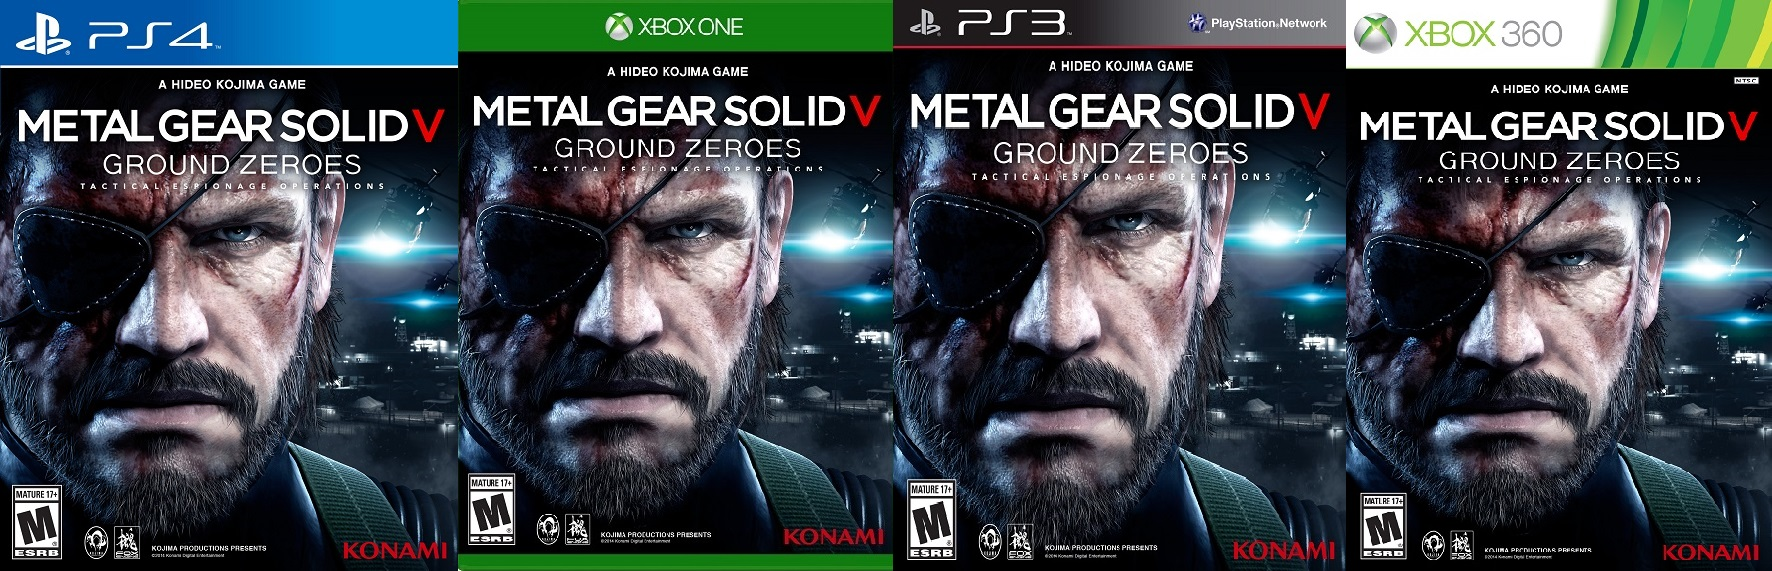 MGS_V_Ground_Zeroes_-_Covers_2_.jpg